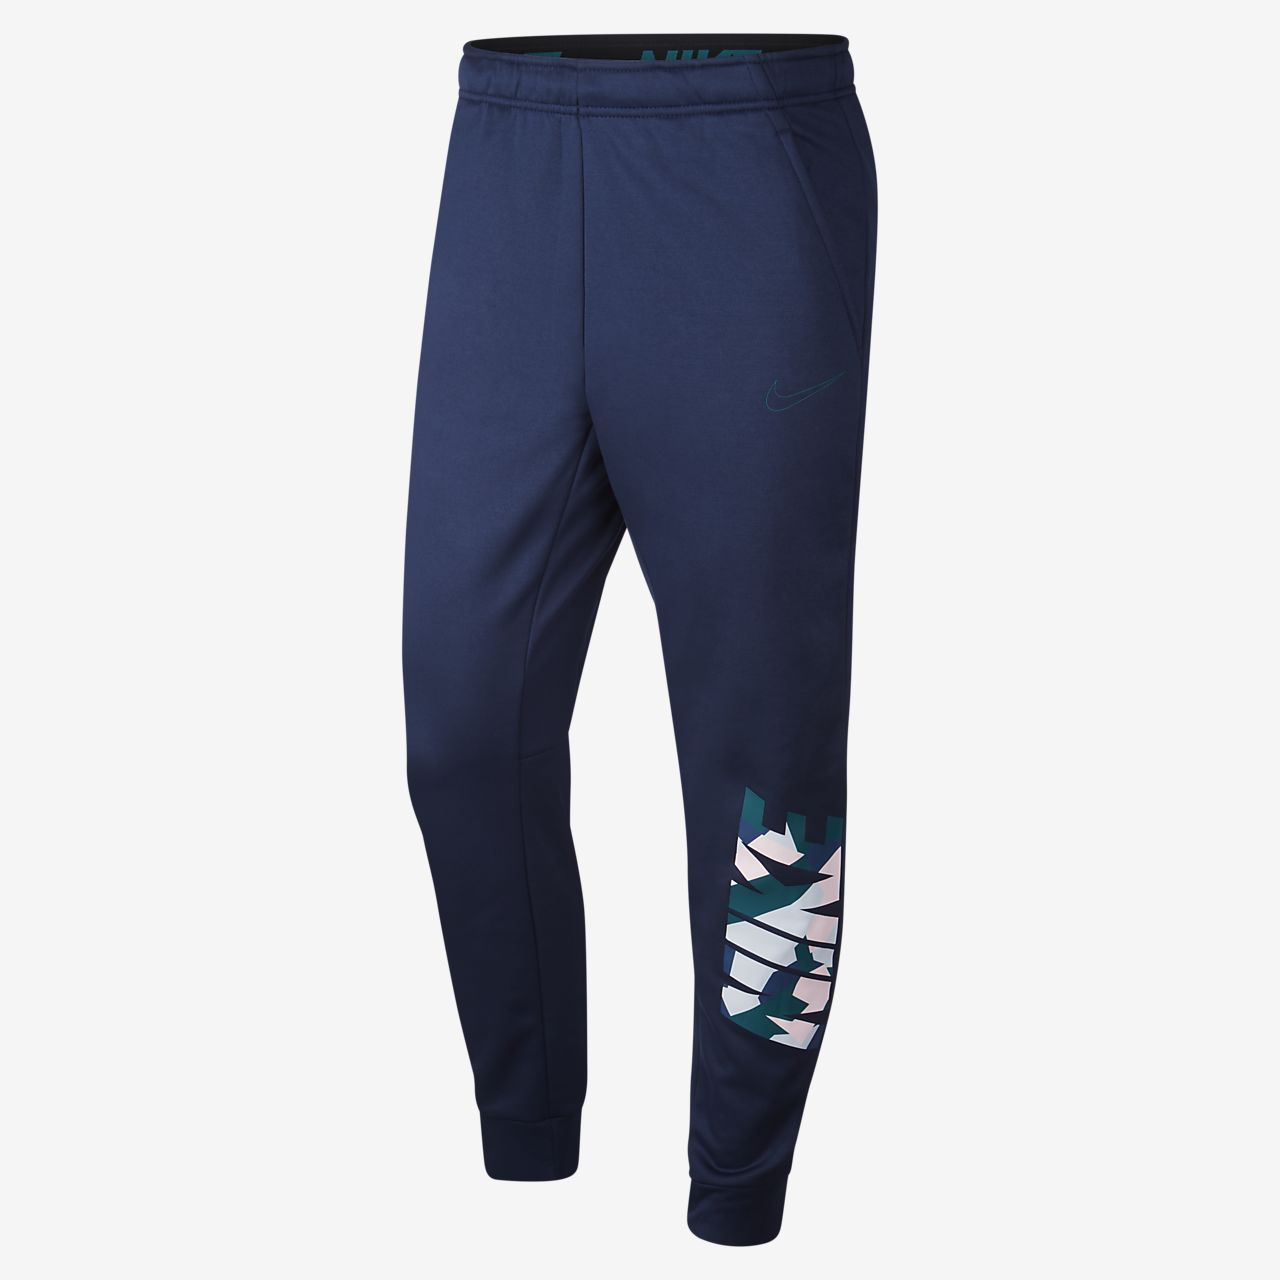 Pantalon de training Nike Therma pour Homme